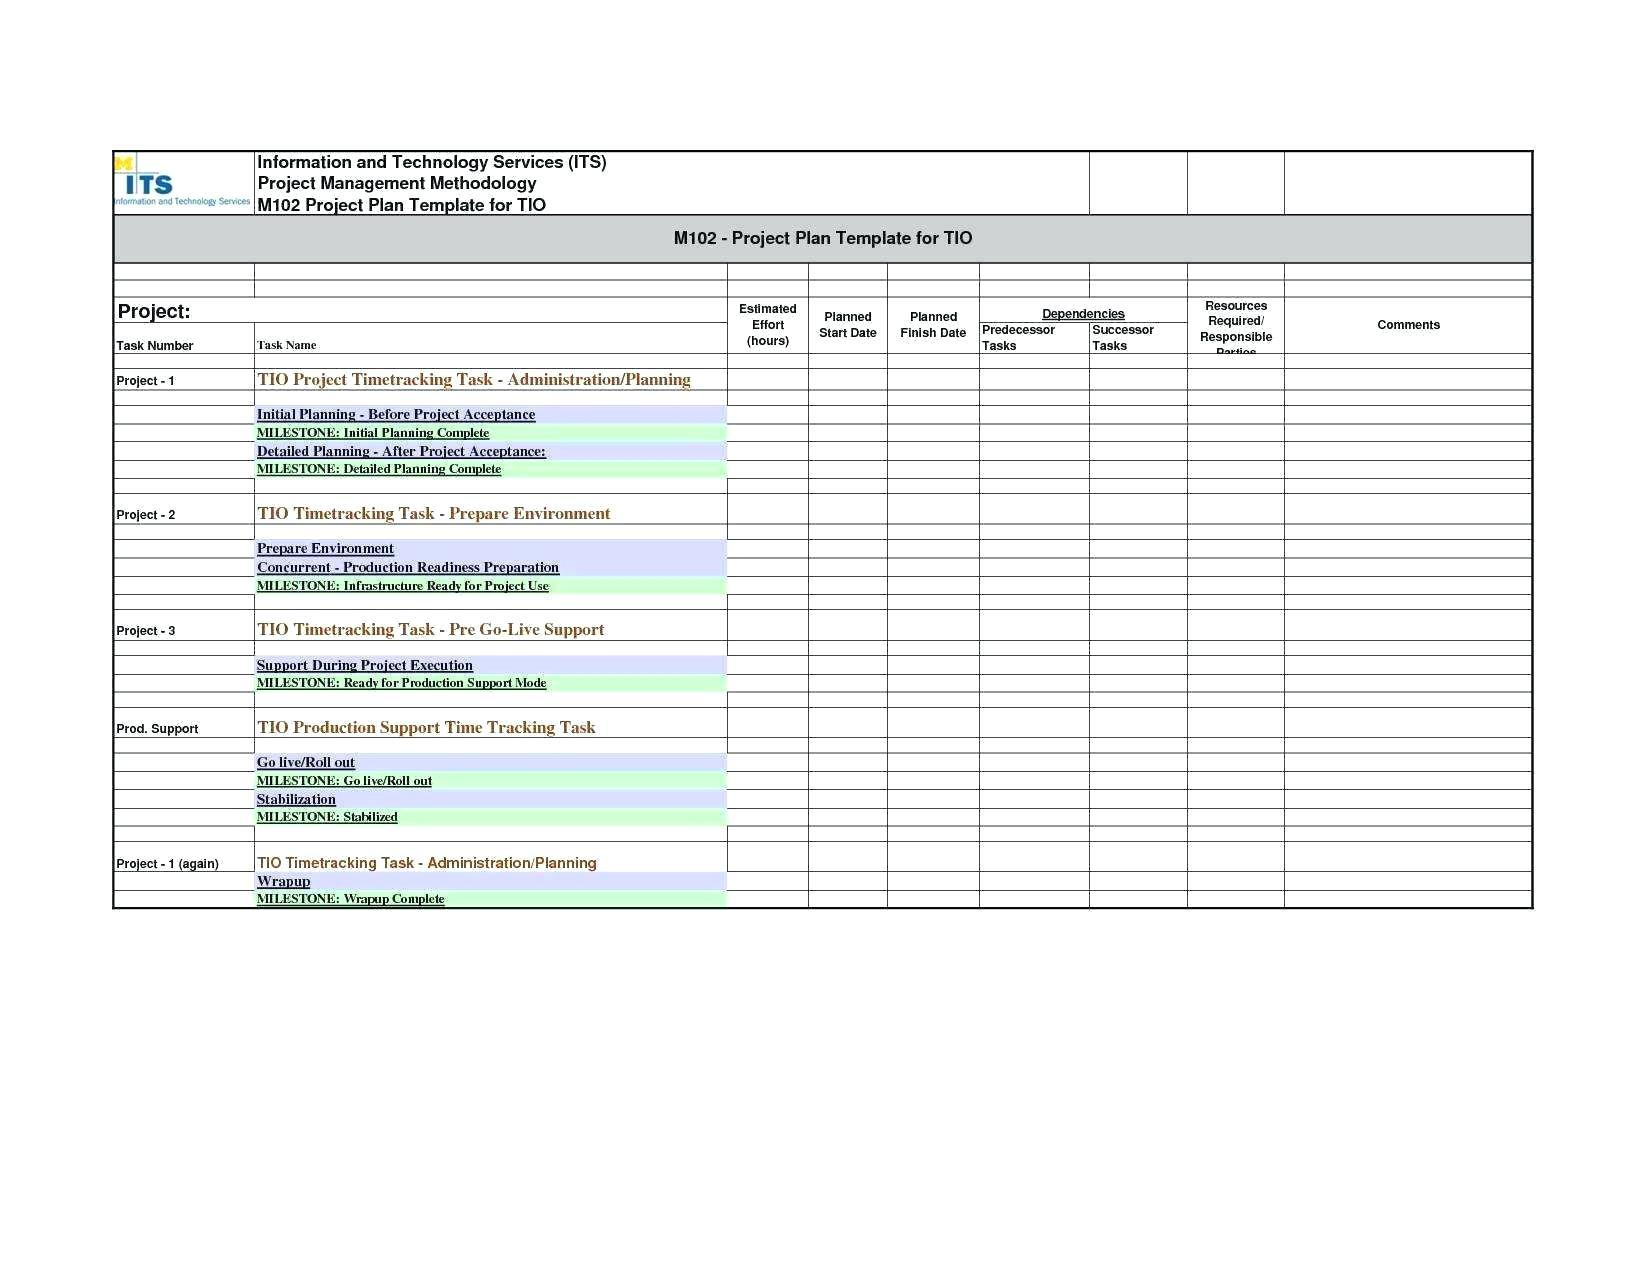 Excel Project Workflow Template